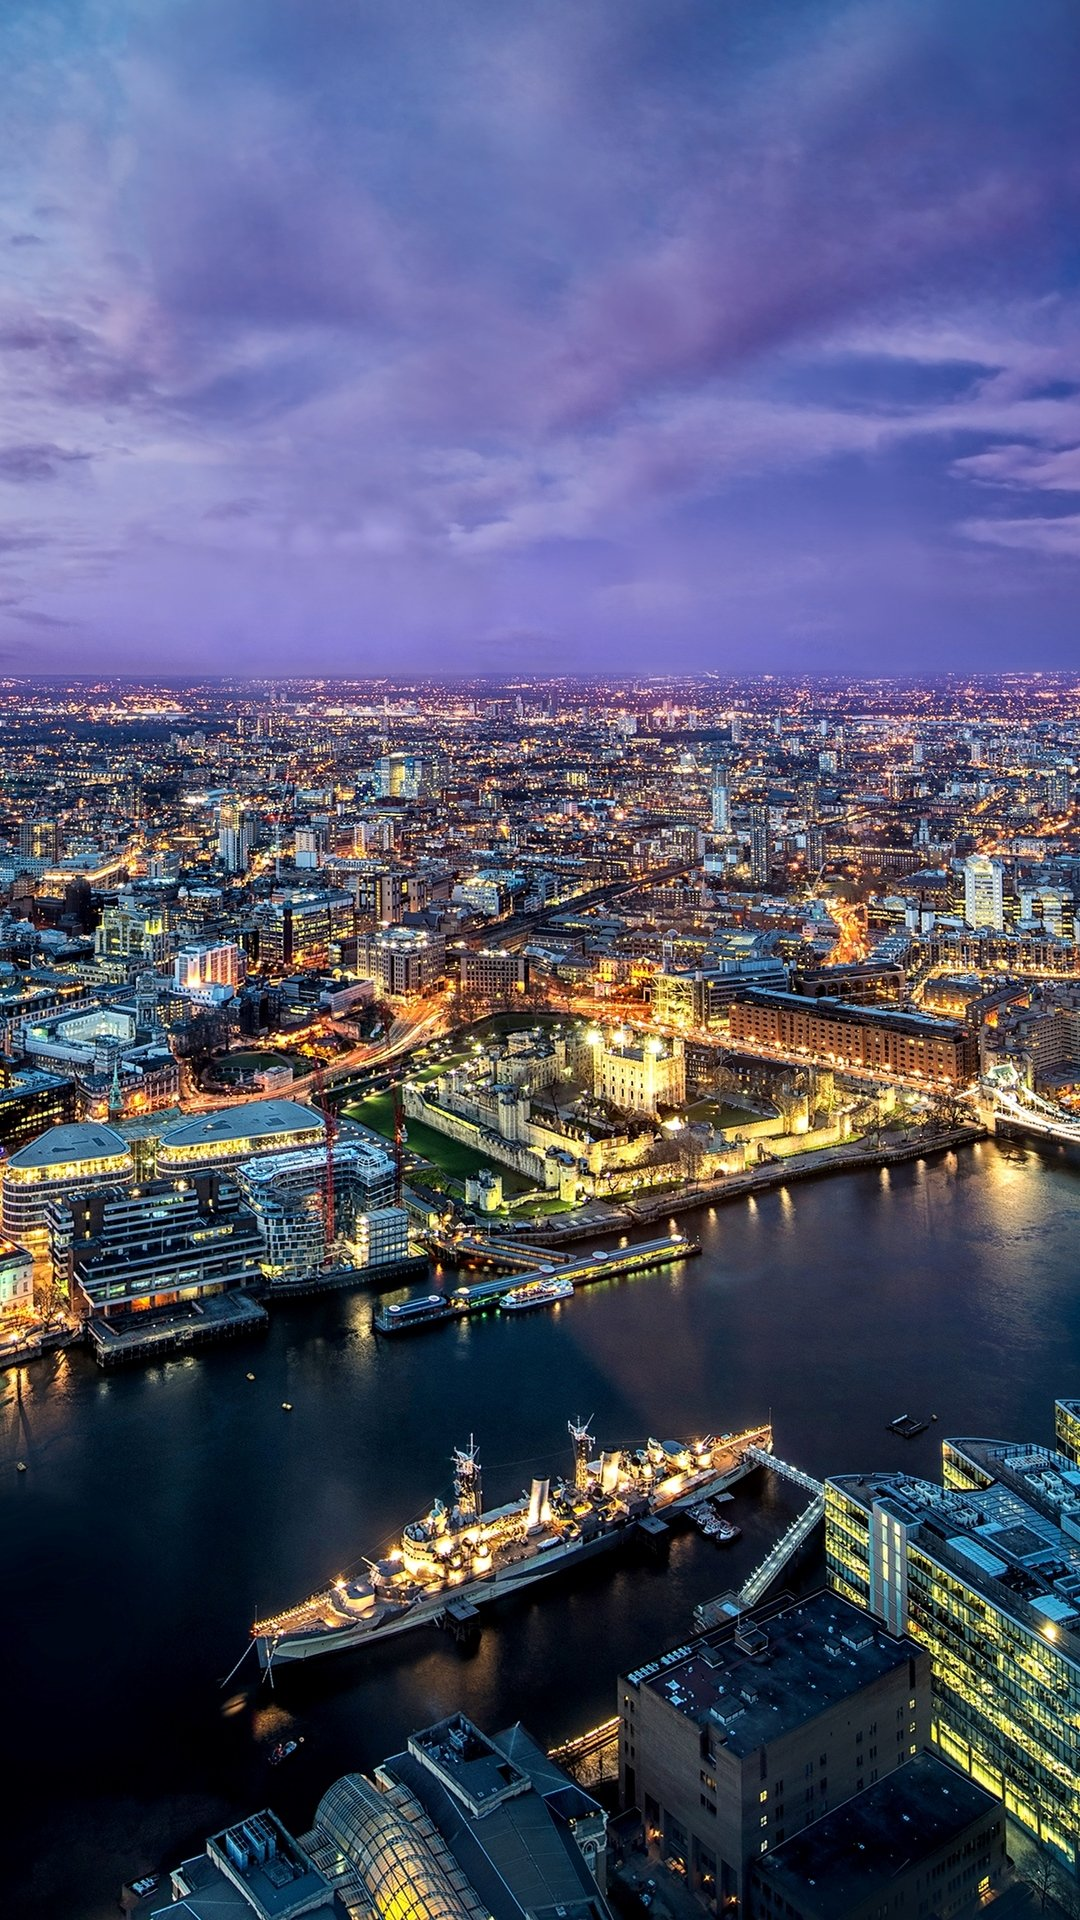 London wallpaper 4k wallpapersafari - Desktop wallpaper 4k ...